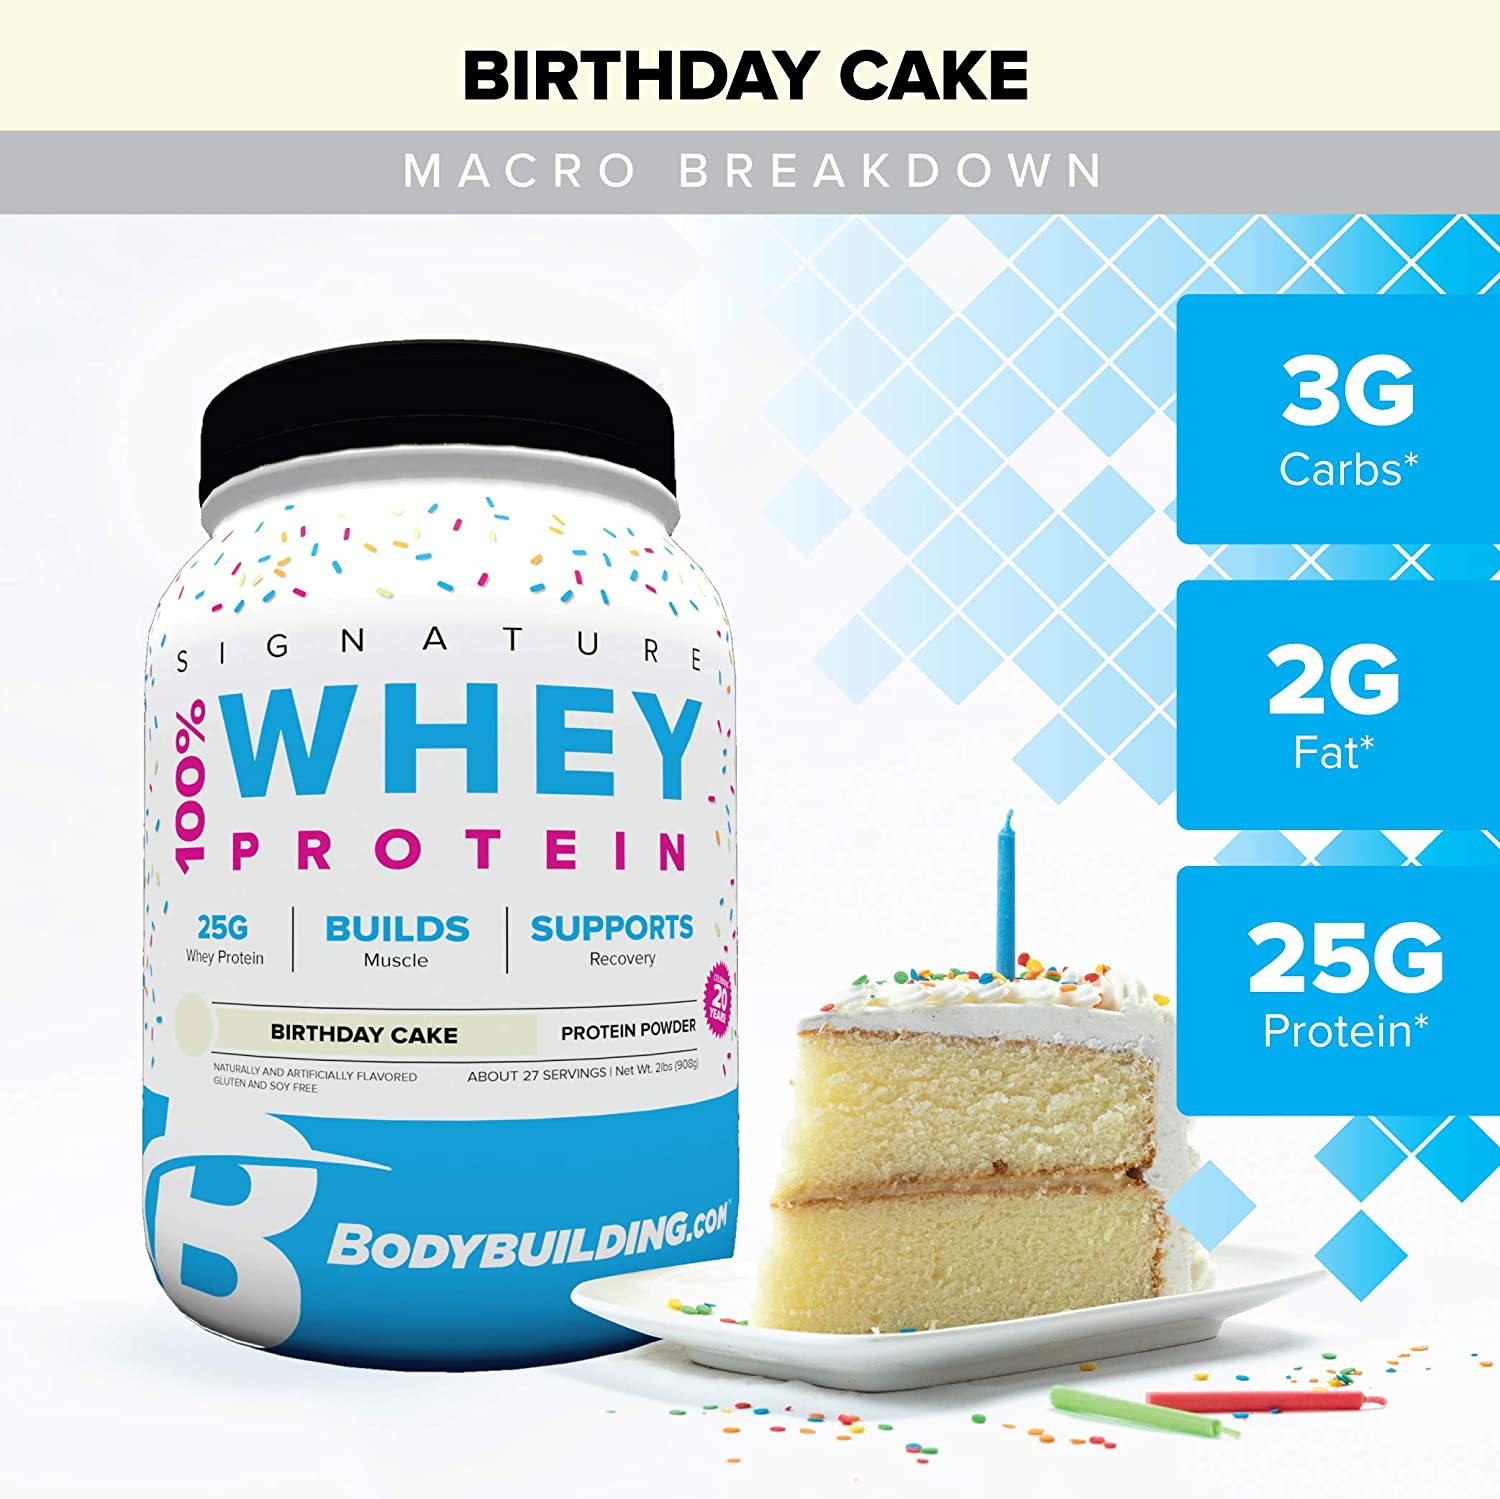 Bodybuilding Signature 100 Whey Protein Powder 25g of Protein per Serving Birthday Cake, 2 Lbs